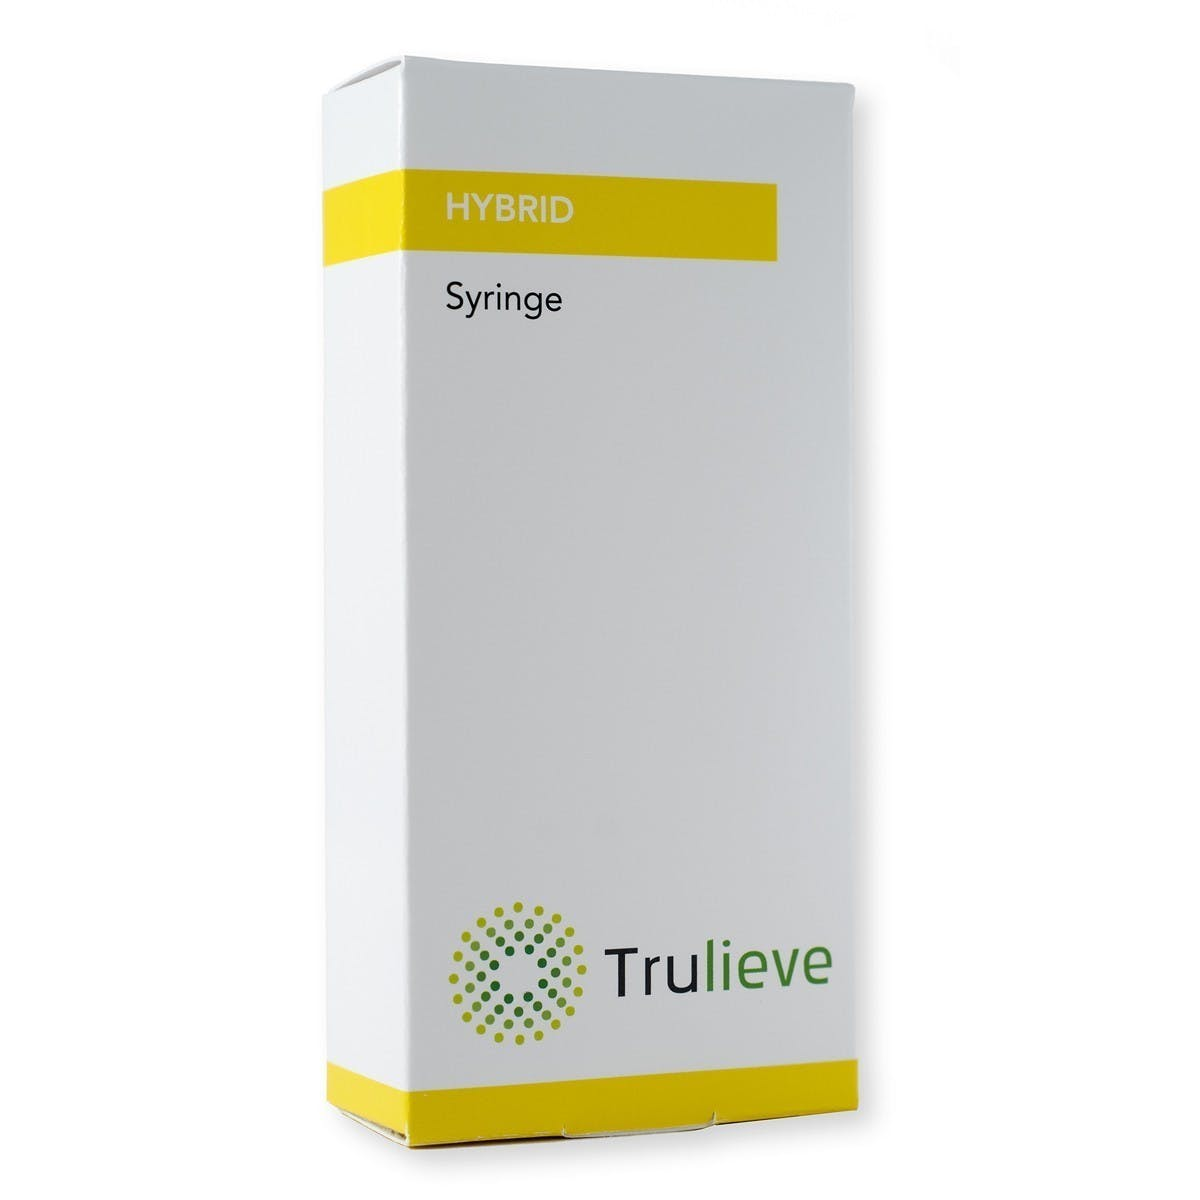 marijuana-dispensaries-trulieve-bradenton-in-bradenton-oral-syringe-200mg-hybrid